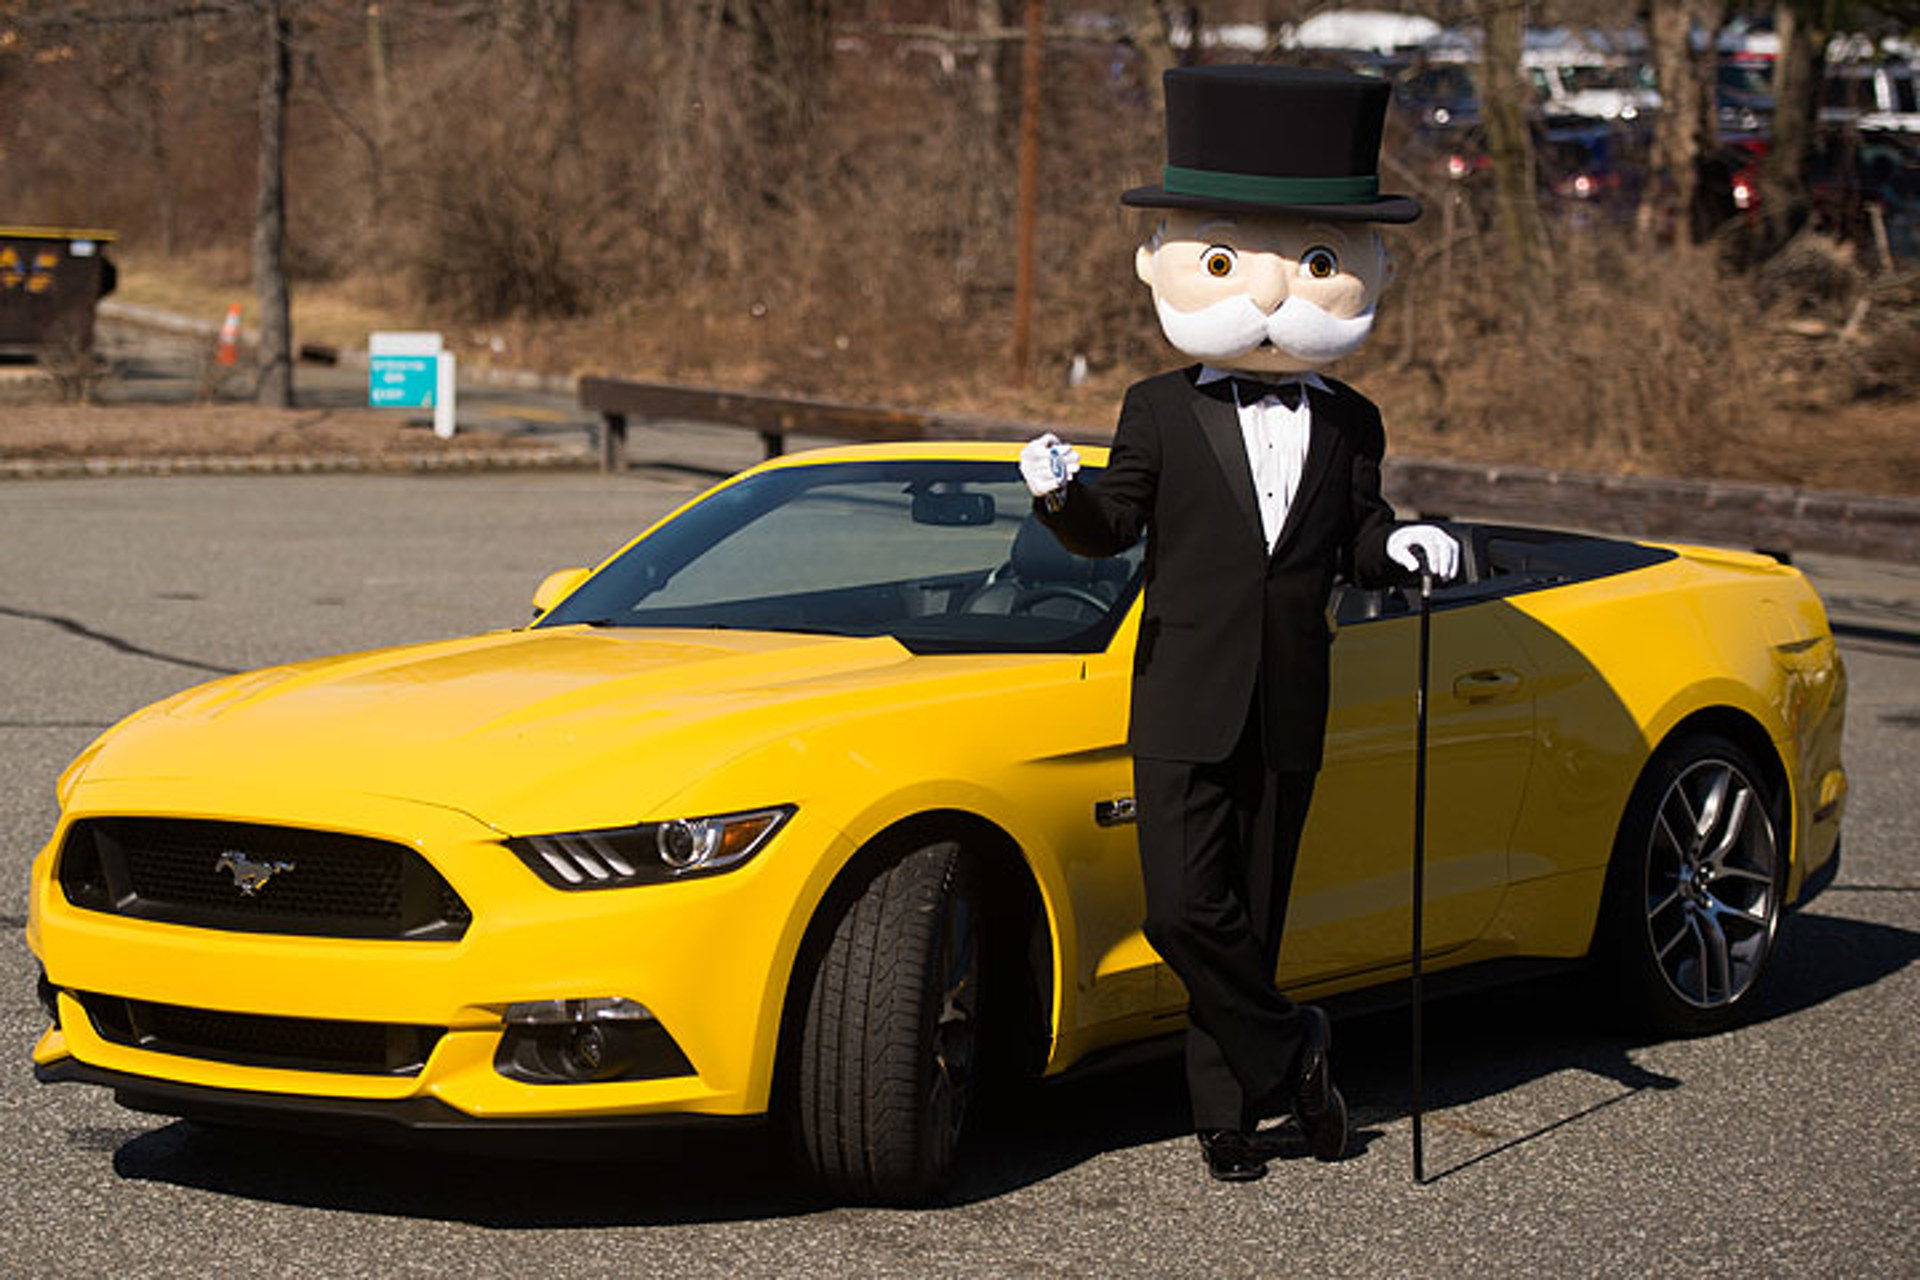 The 2016 Ford Mustang is Officially a Monopoly Piece